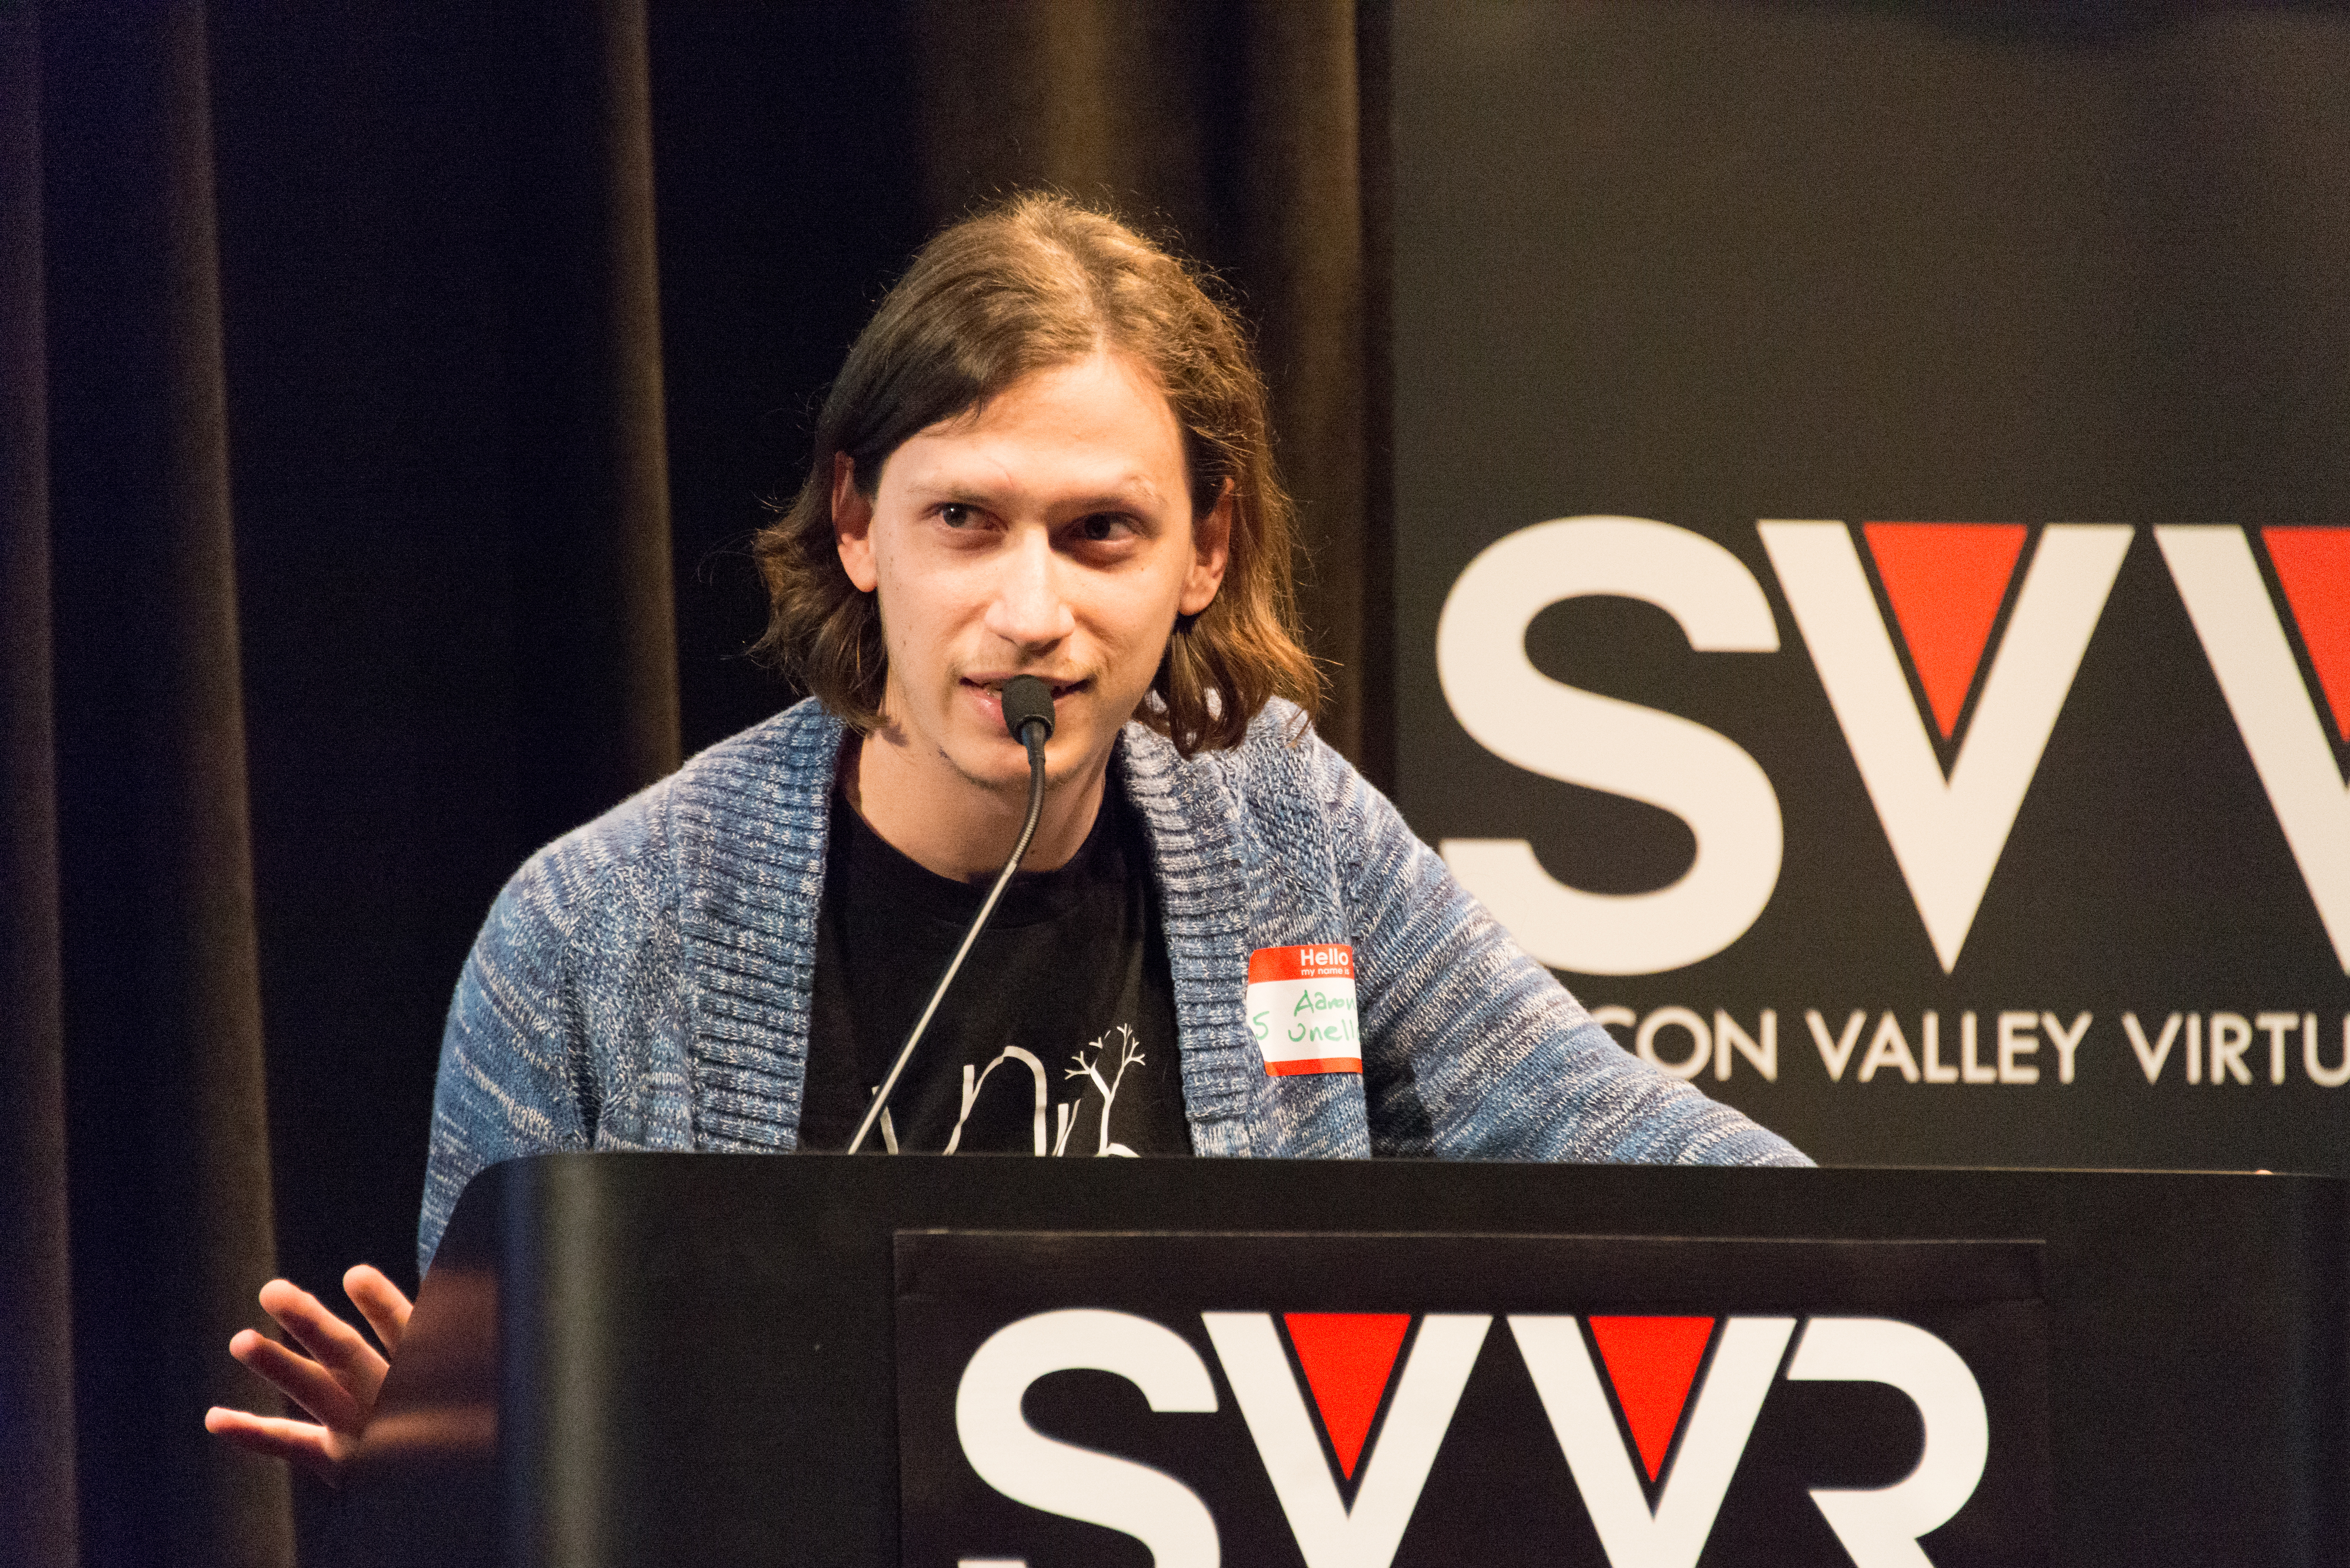 Aaron Lemke of Unello Design giving 60 Second Pitch at SVVR (right hand spread), Indoor, People, SVVR, HQ Photo